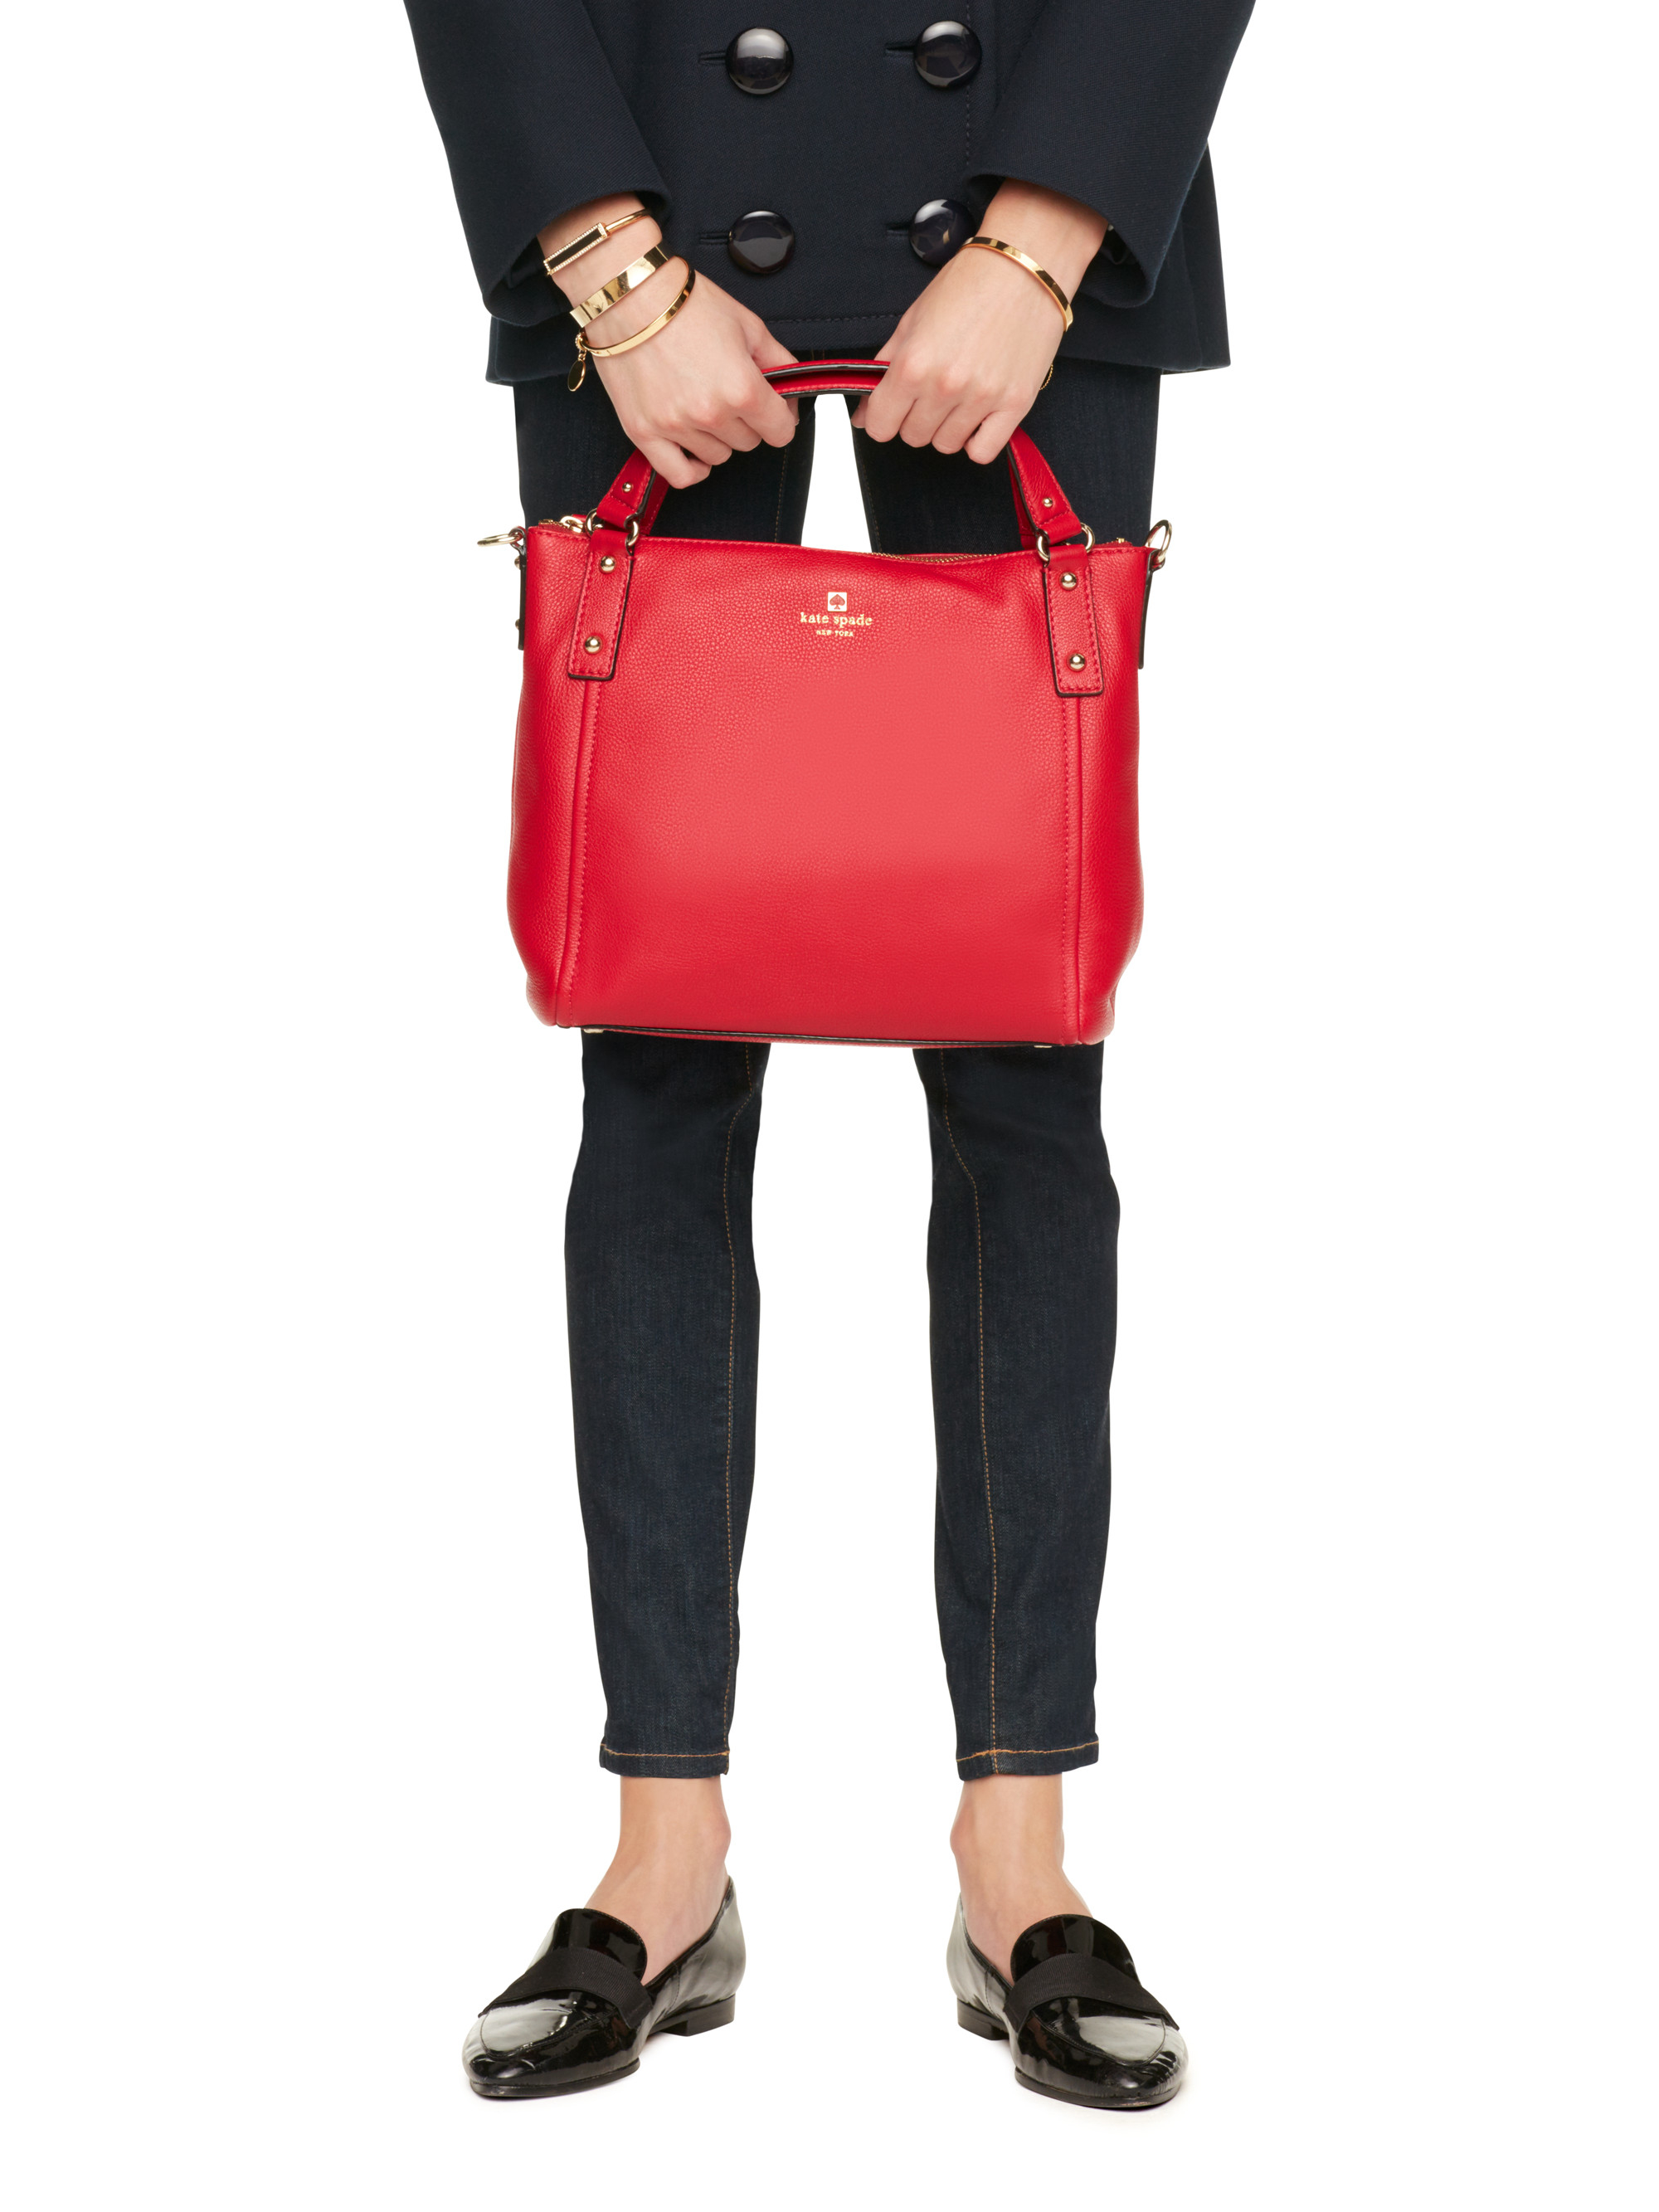 a51977e7b06c kate spade new york Red Pine Street Small Kori Leather Shoulder Bag